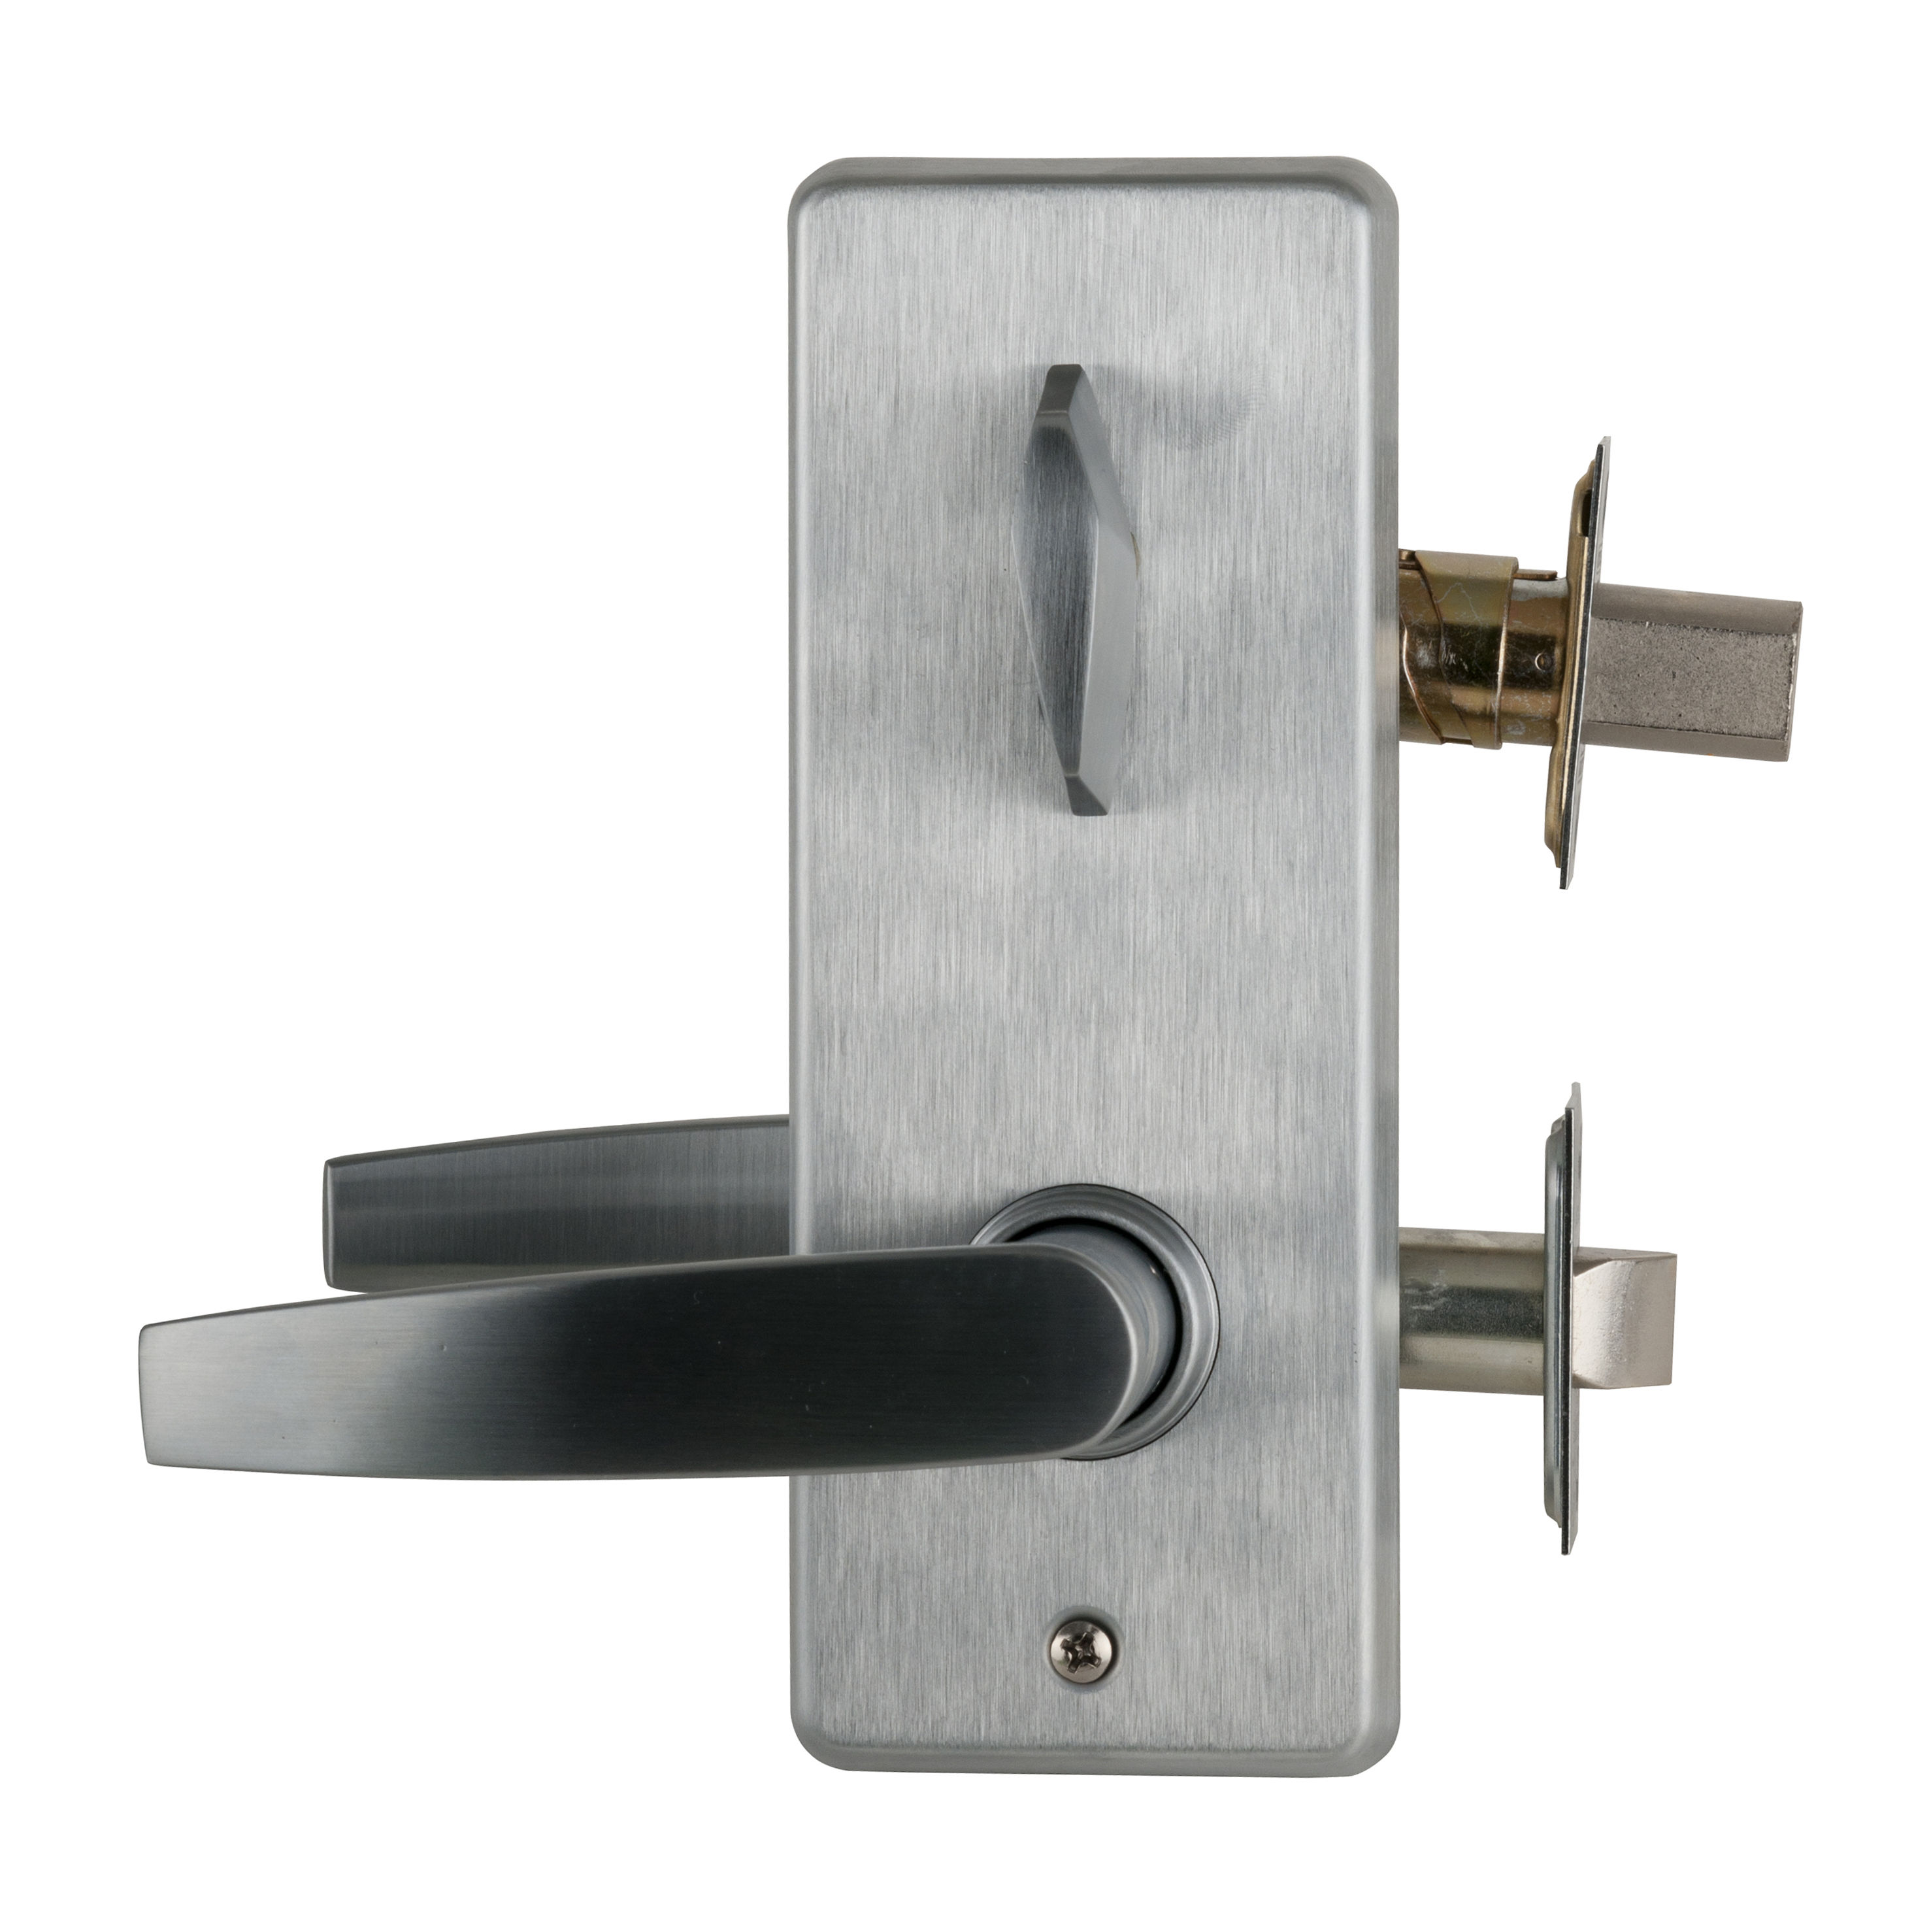 schlage commercial locks. Schlage S210JUP613 Oil Rubbed Bronze S200-Series Commercial Tubular Interconnected Single Locking Entrance Jupiter Lever Set And Deadbolt With 6-Pin Locks T